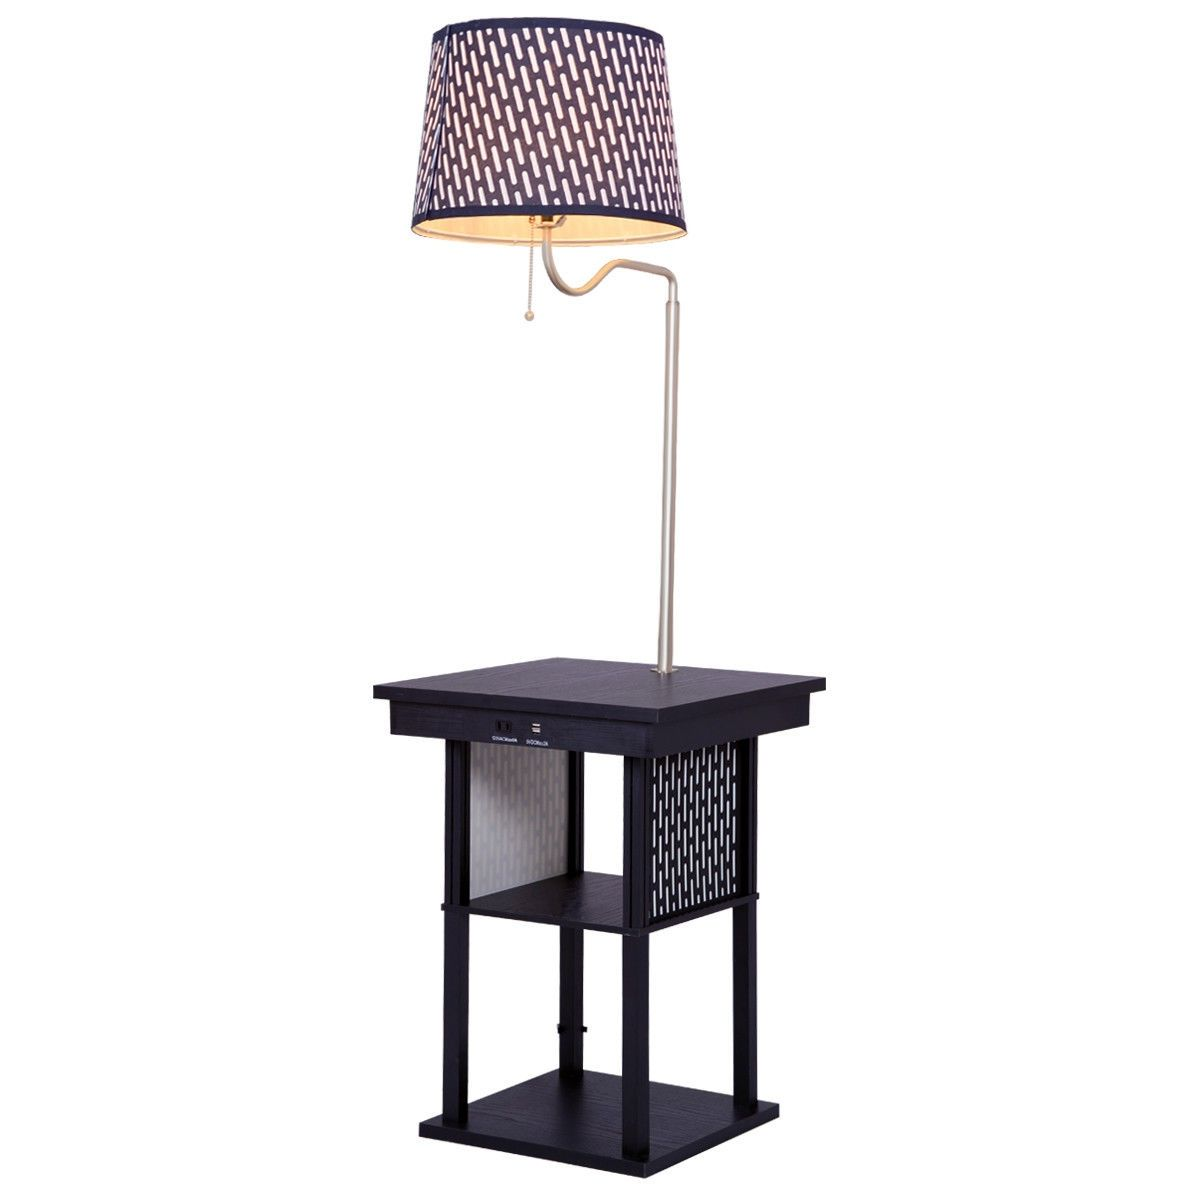 Living Room Floor Lamp with Shade 2 USB Ports in 2019